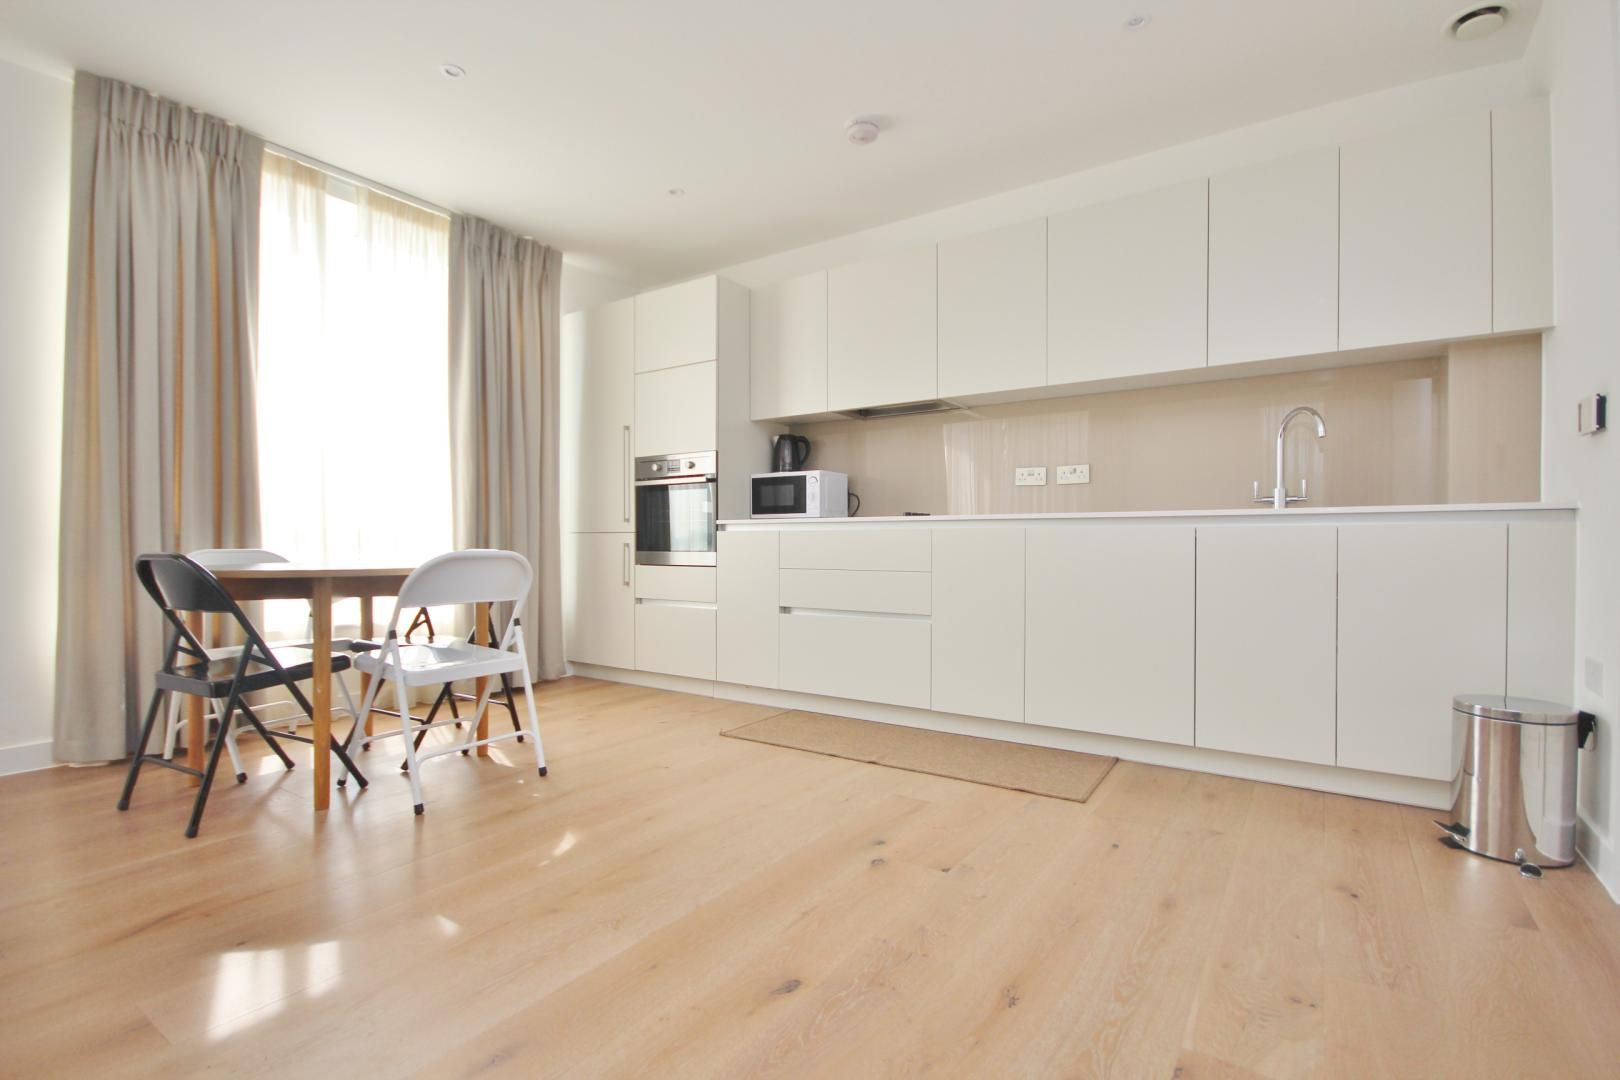 2 bed flat to rent in Ottley Drive, SE3